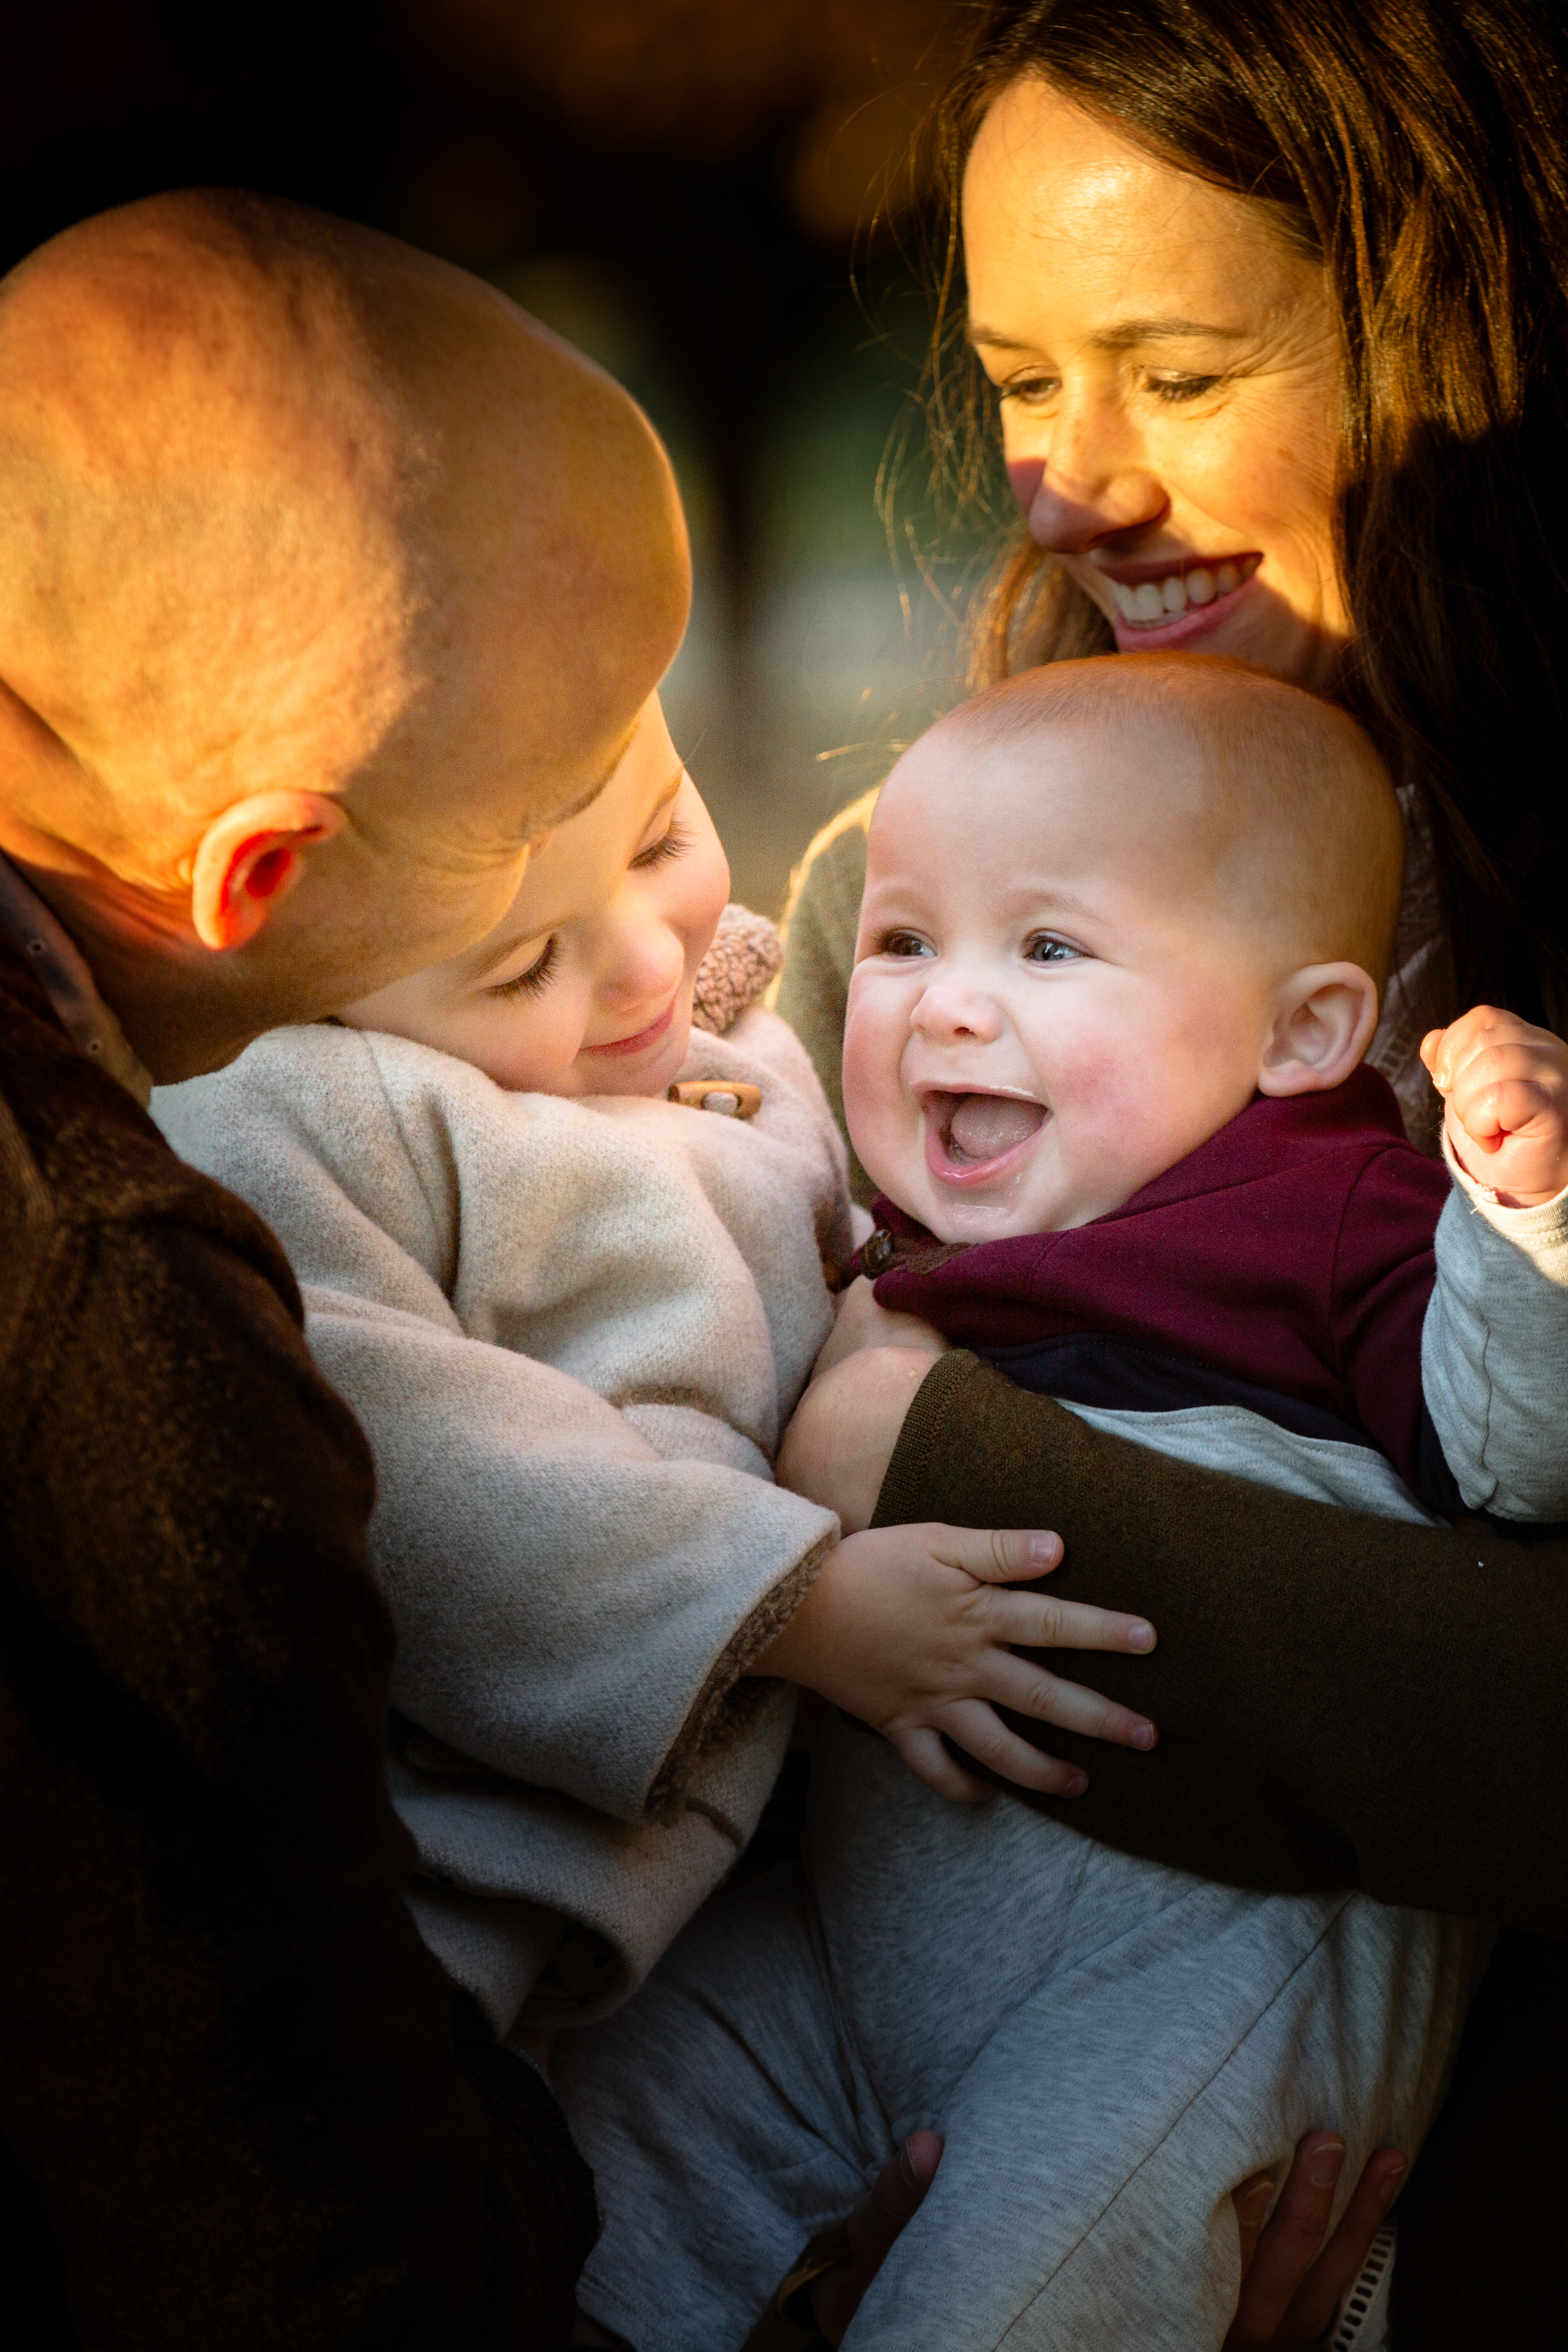 family of four snuggles together and baby son grins